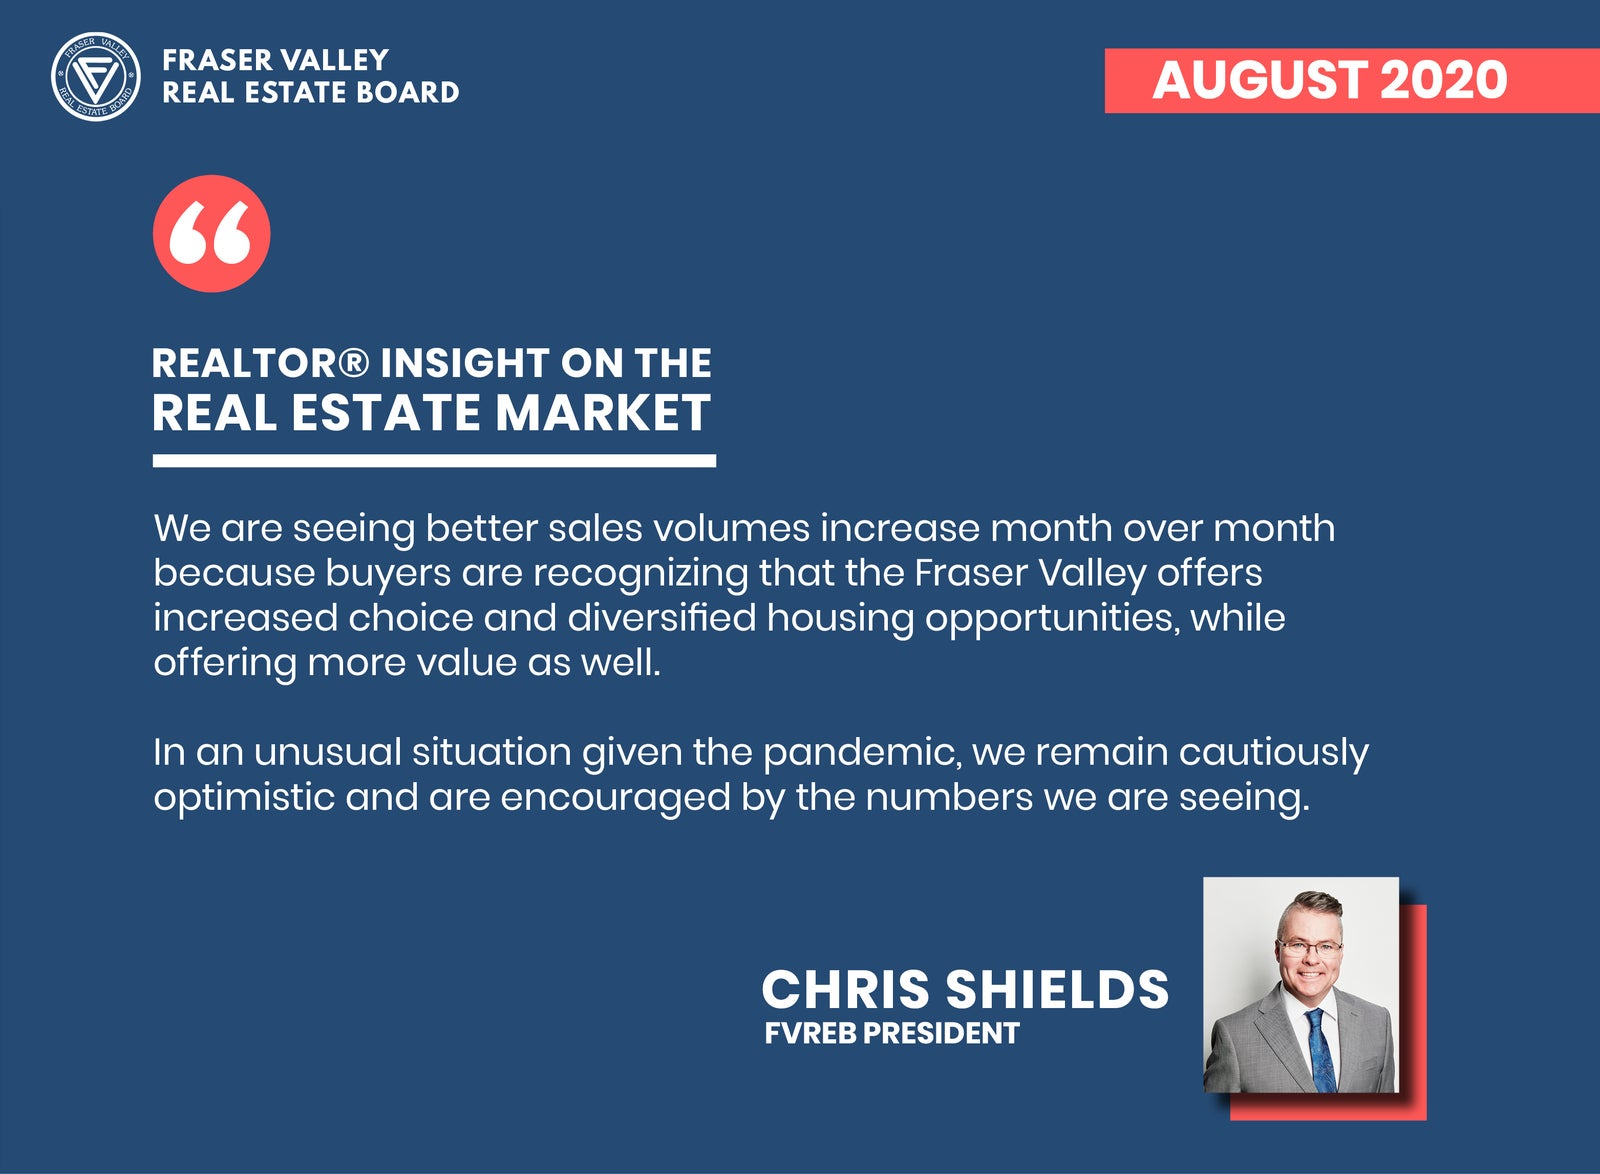 FVREB Real Estate Market Report - Chris Shields August 2020